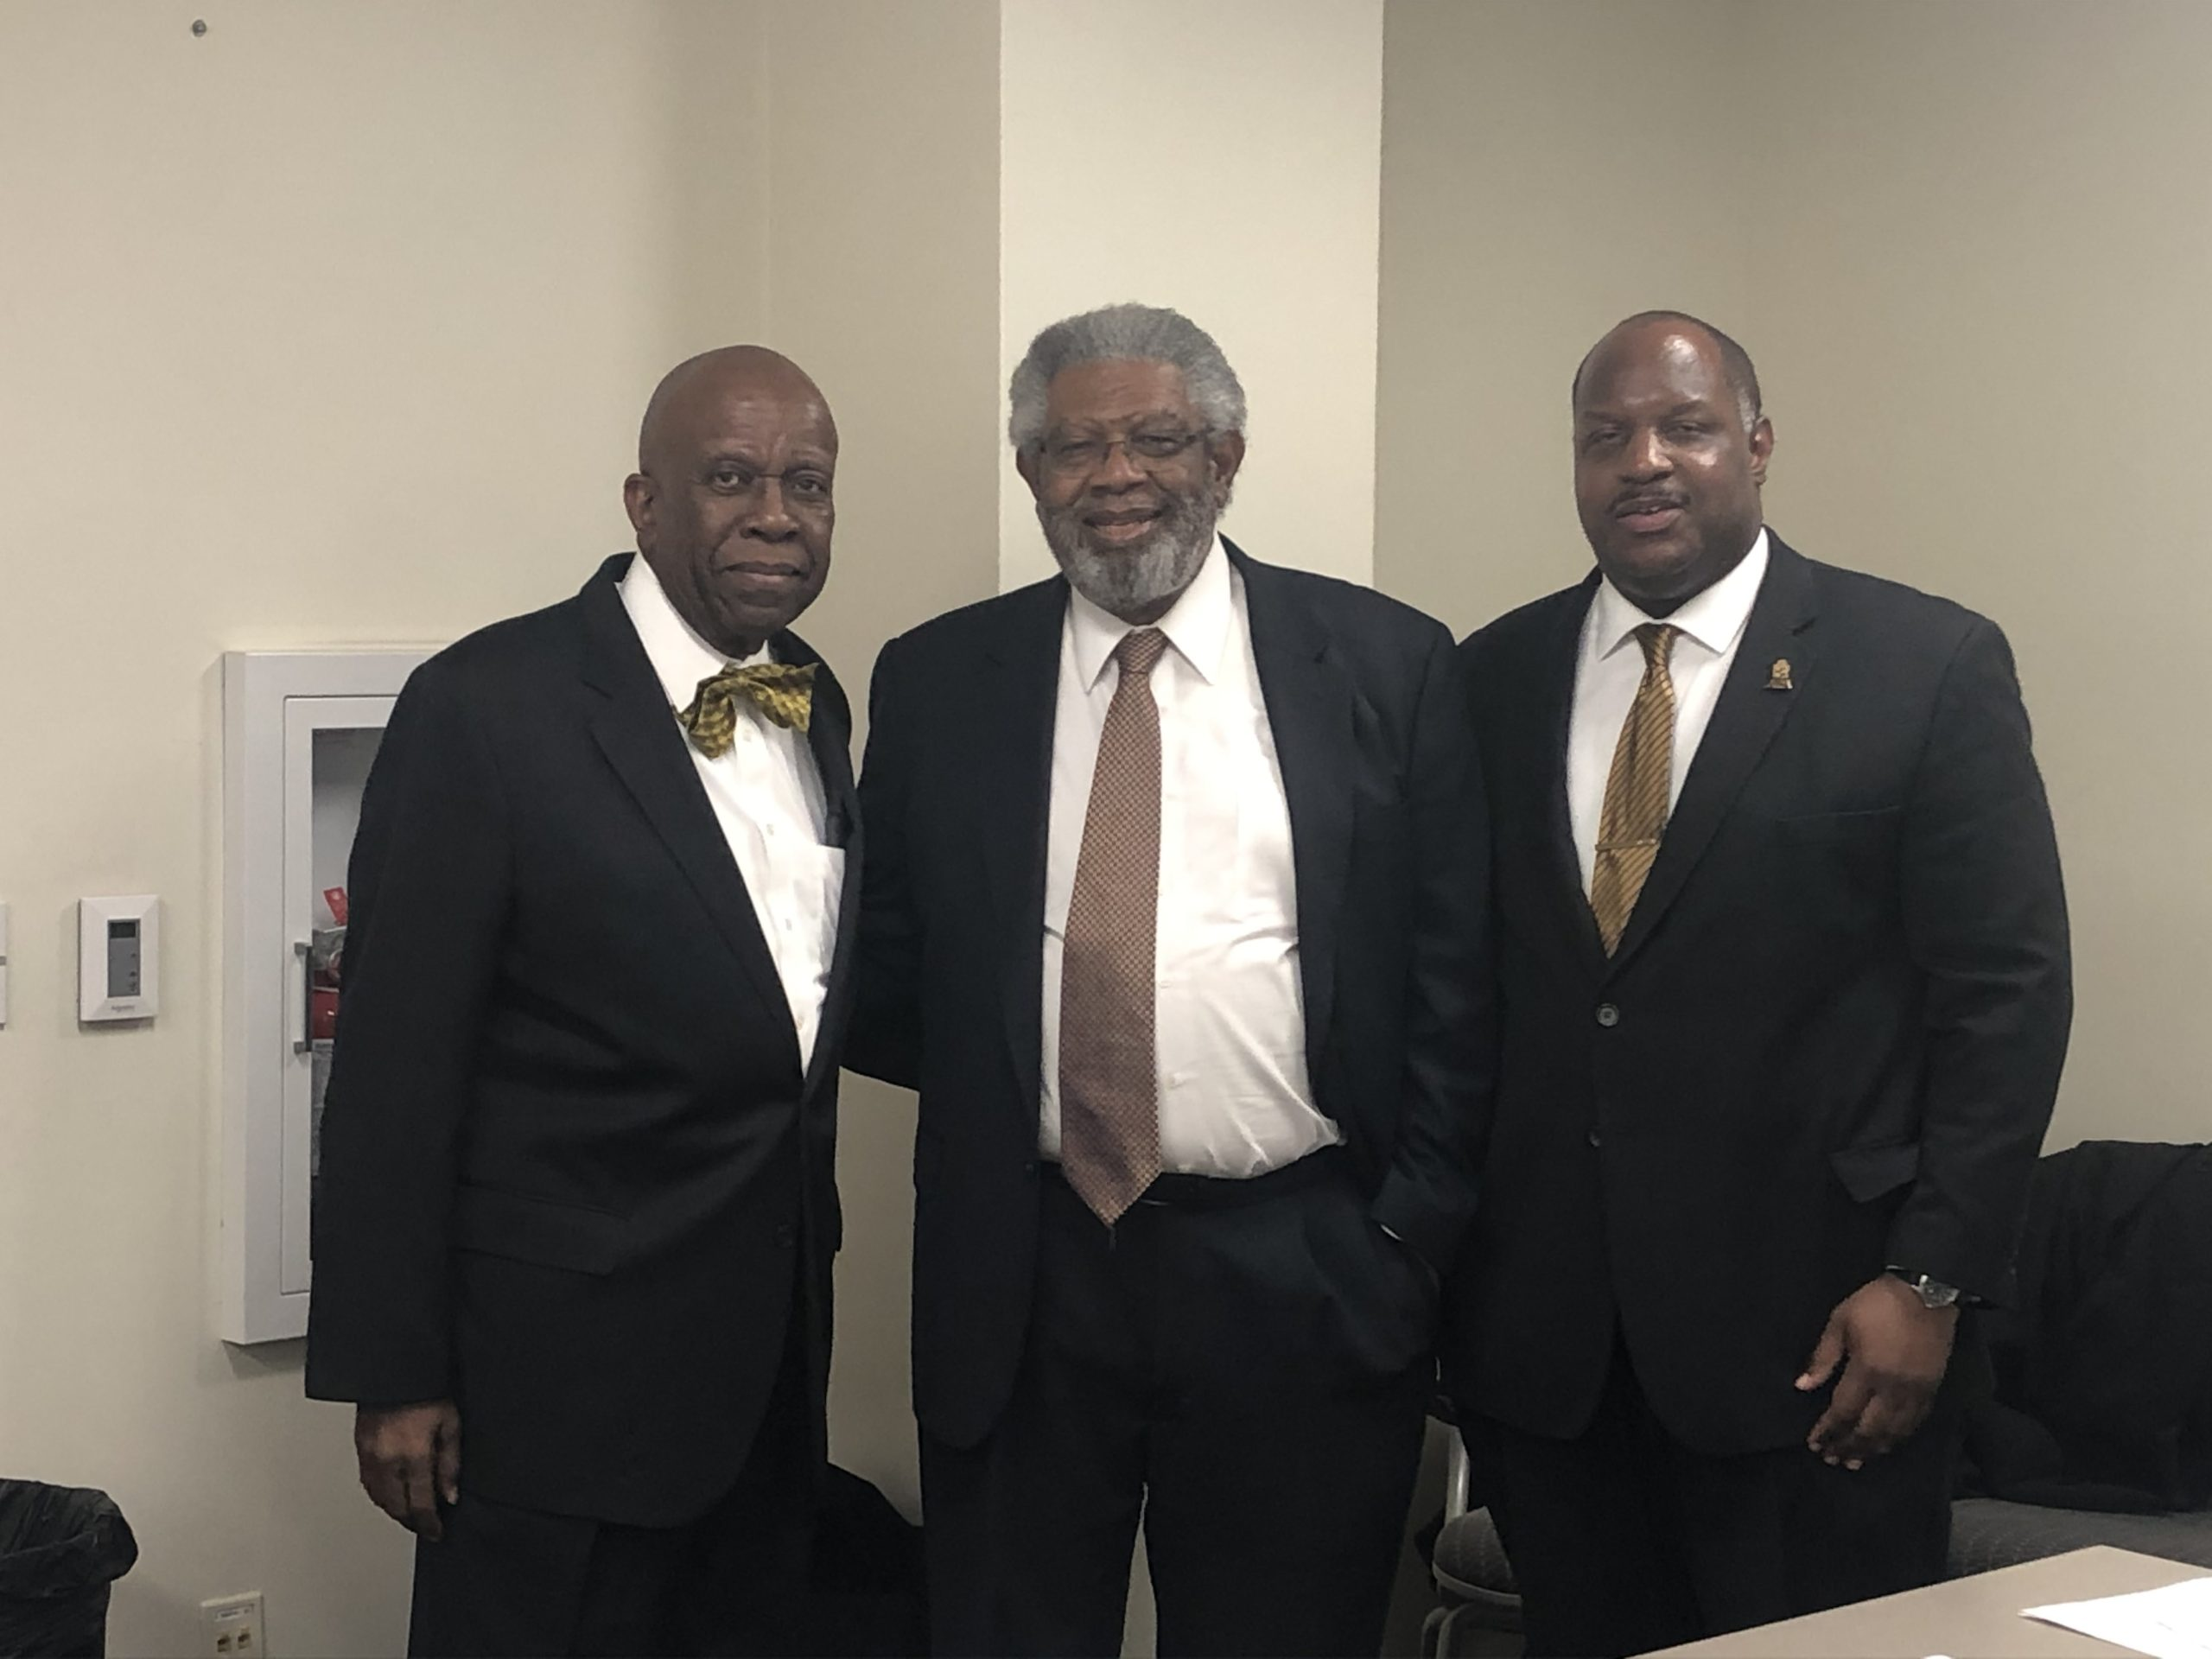 KL Brother Porter with APL Brothers Terry and Burris 1119